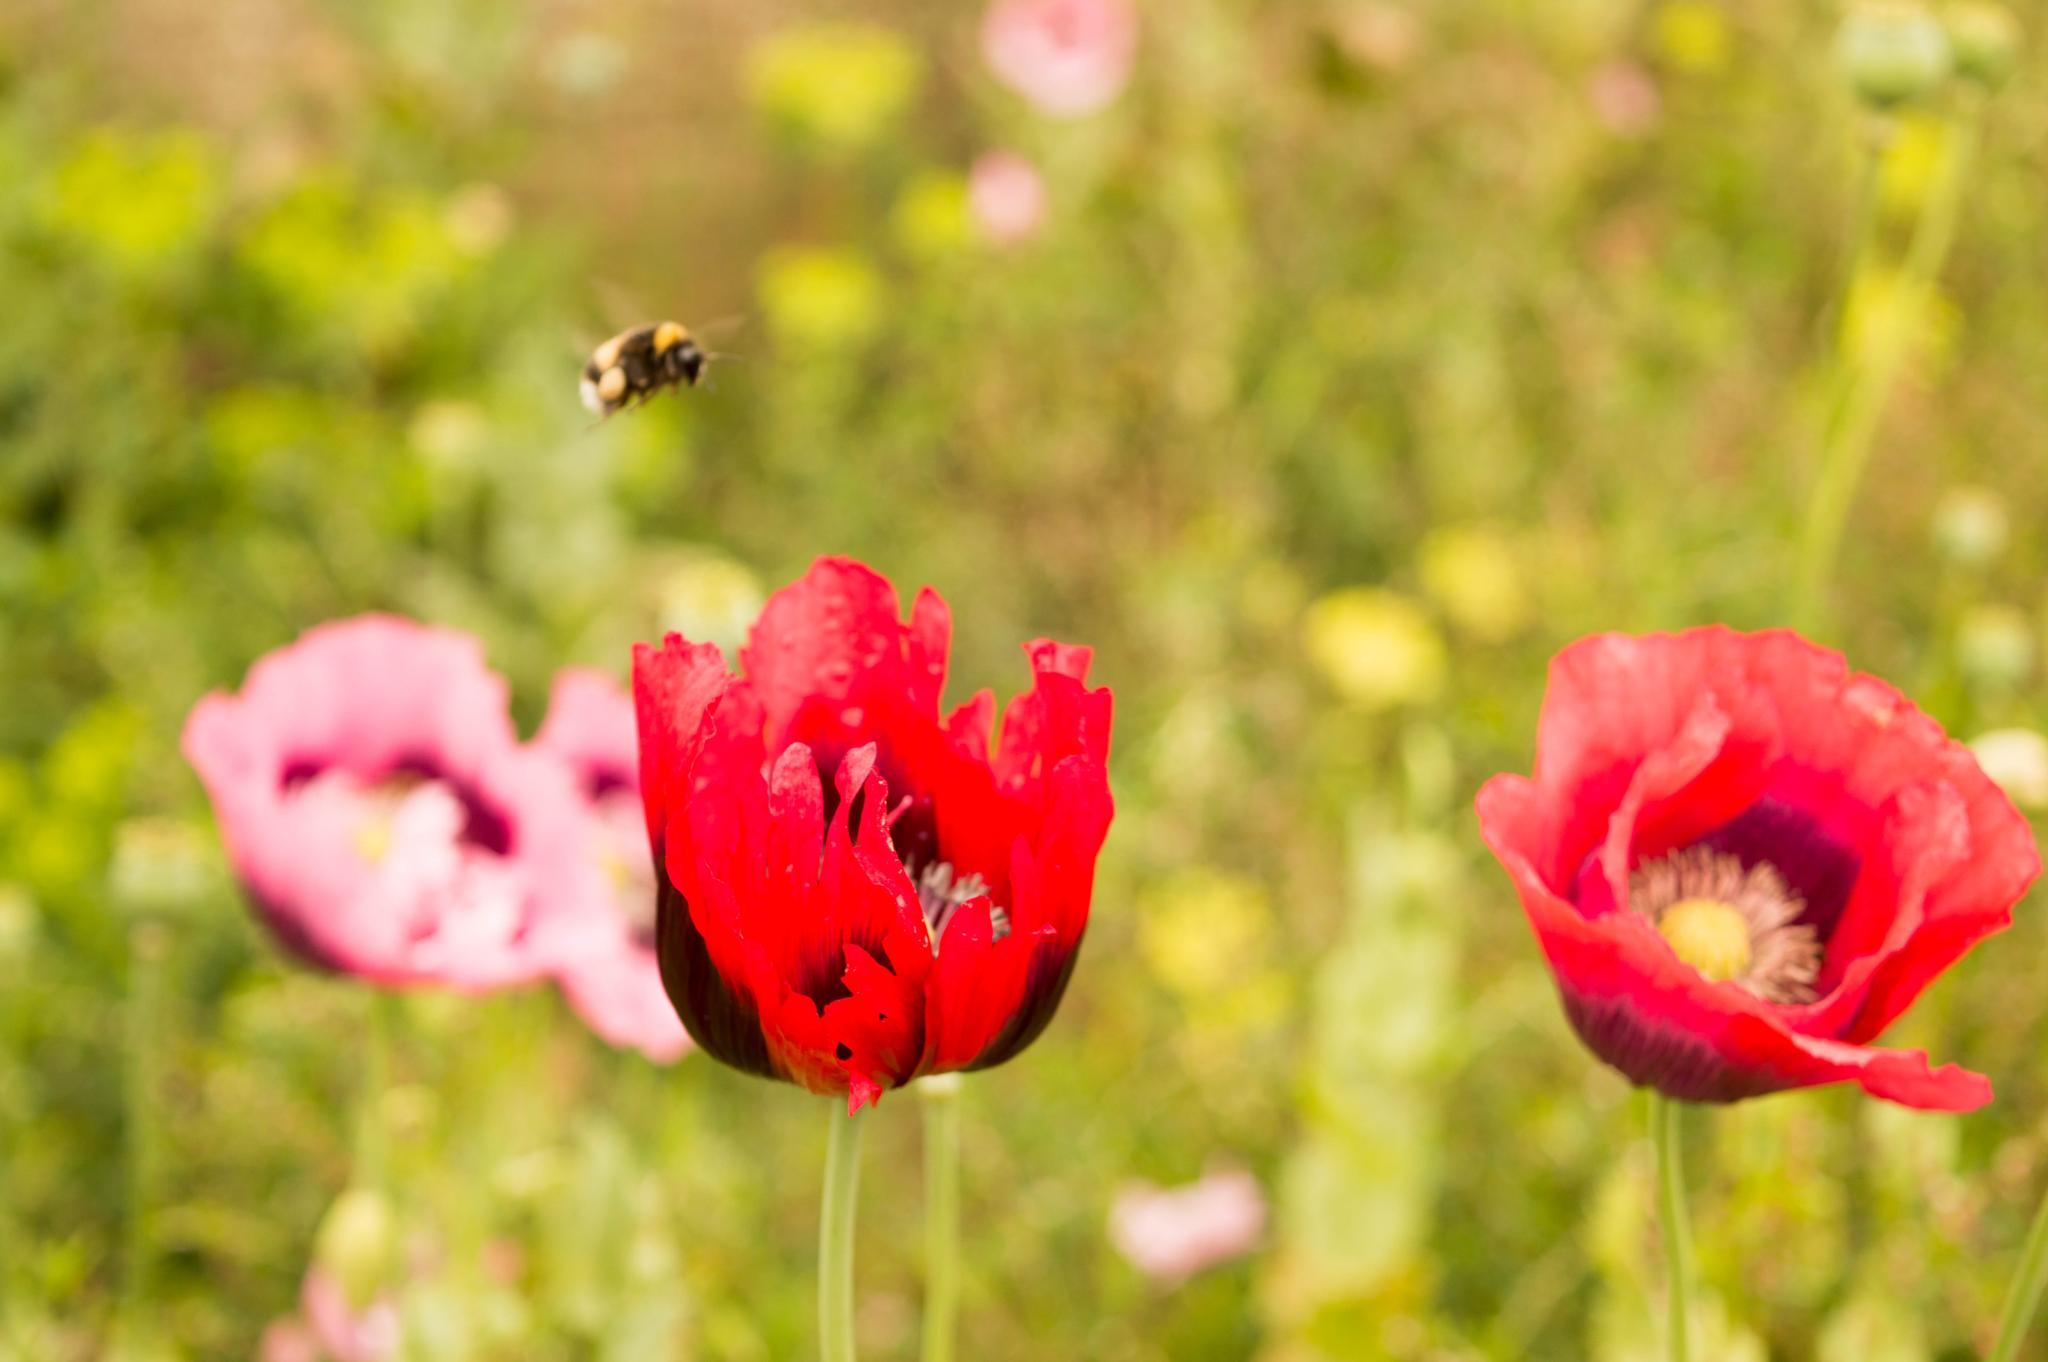 Bee & Poppies by Jacqueline Thomas